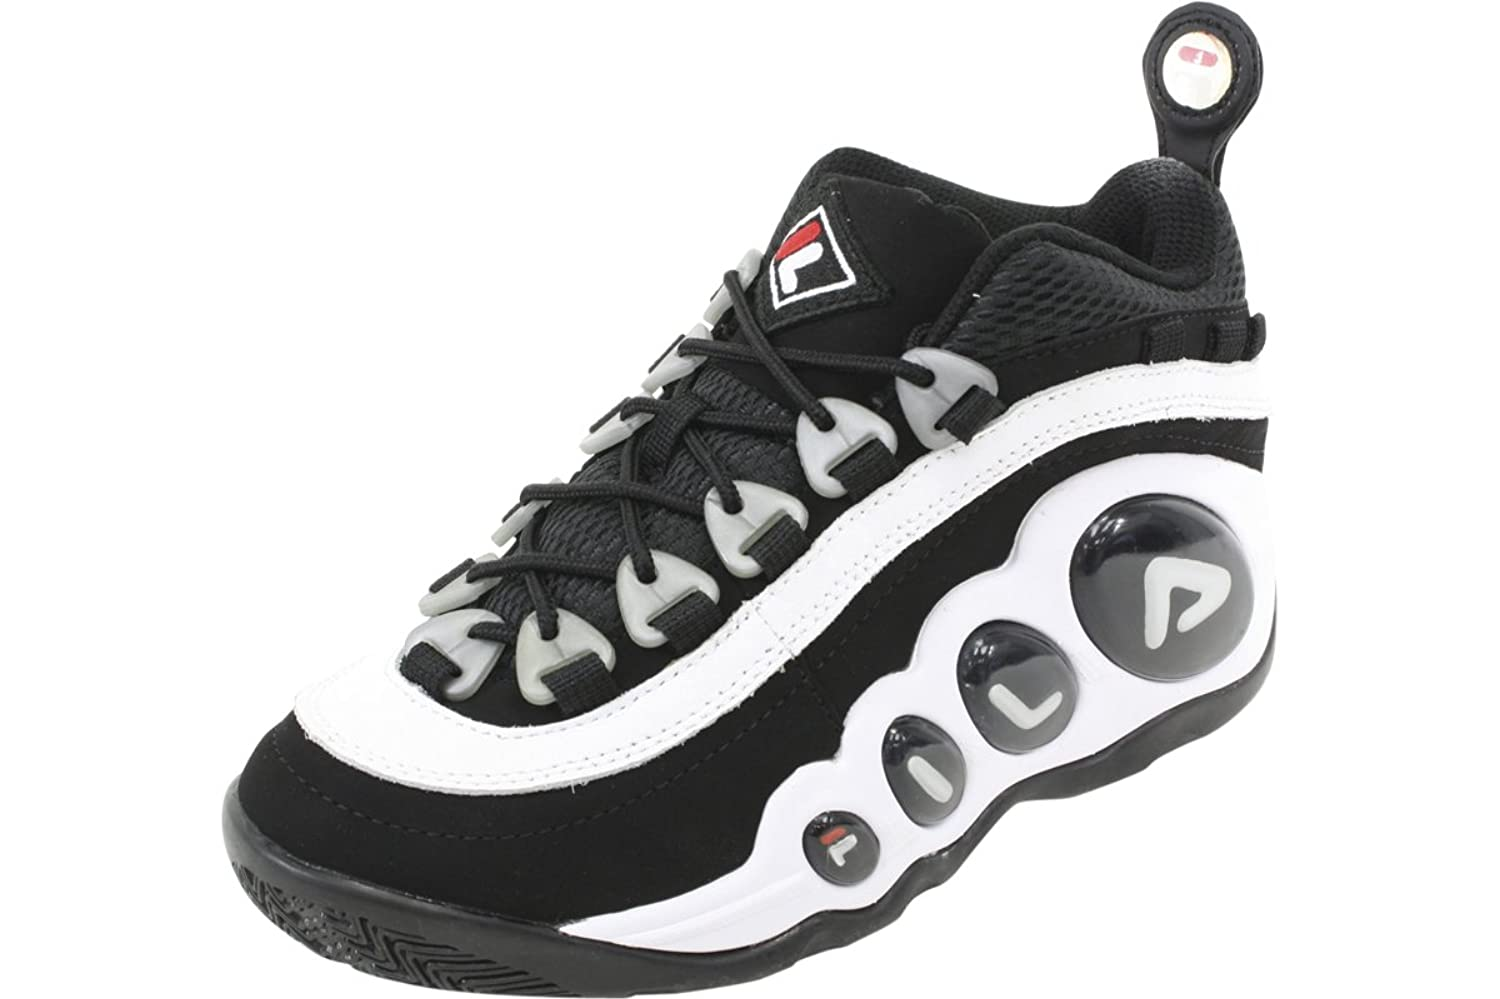 best deal on fila shoes